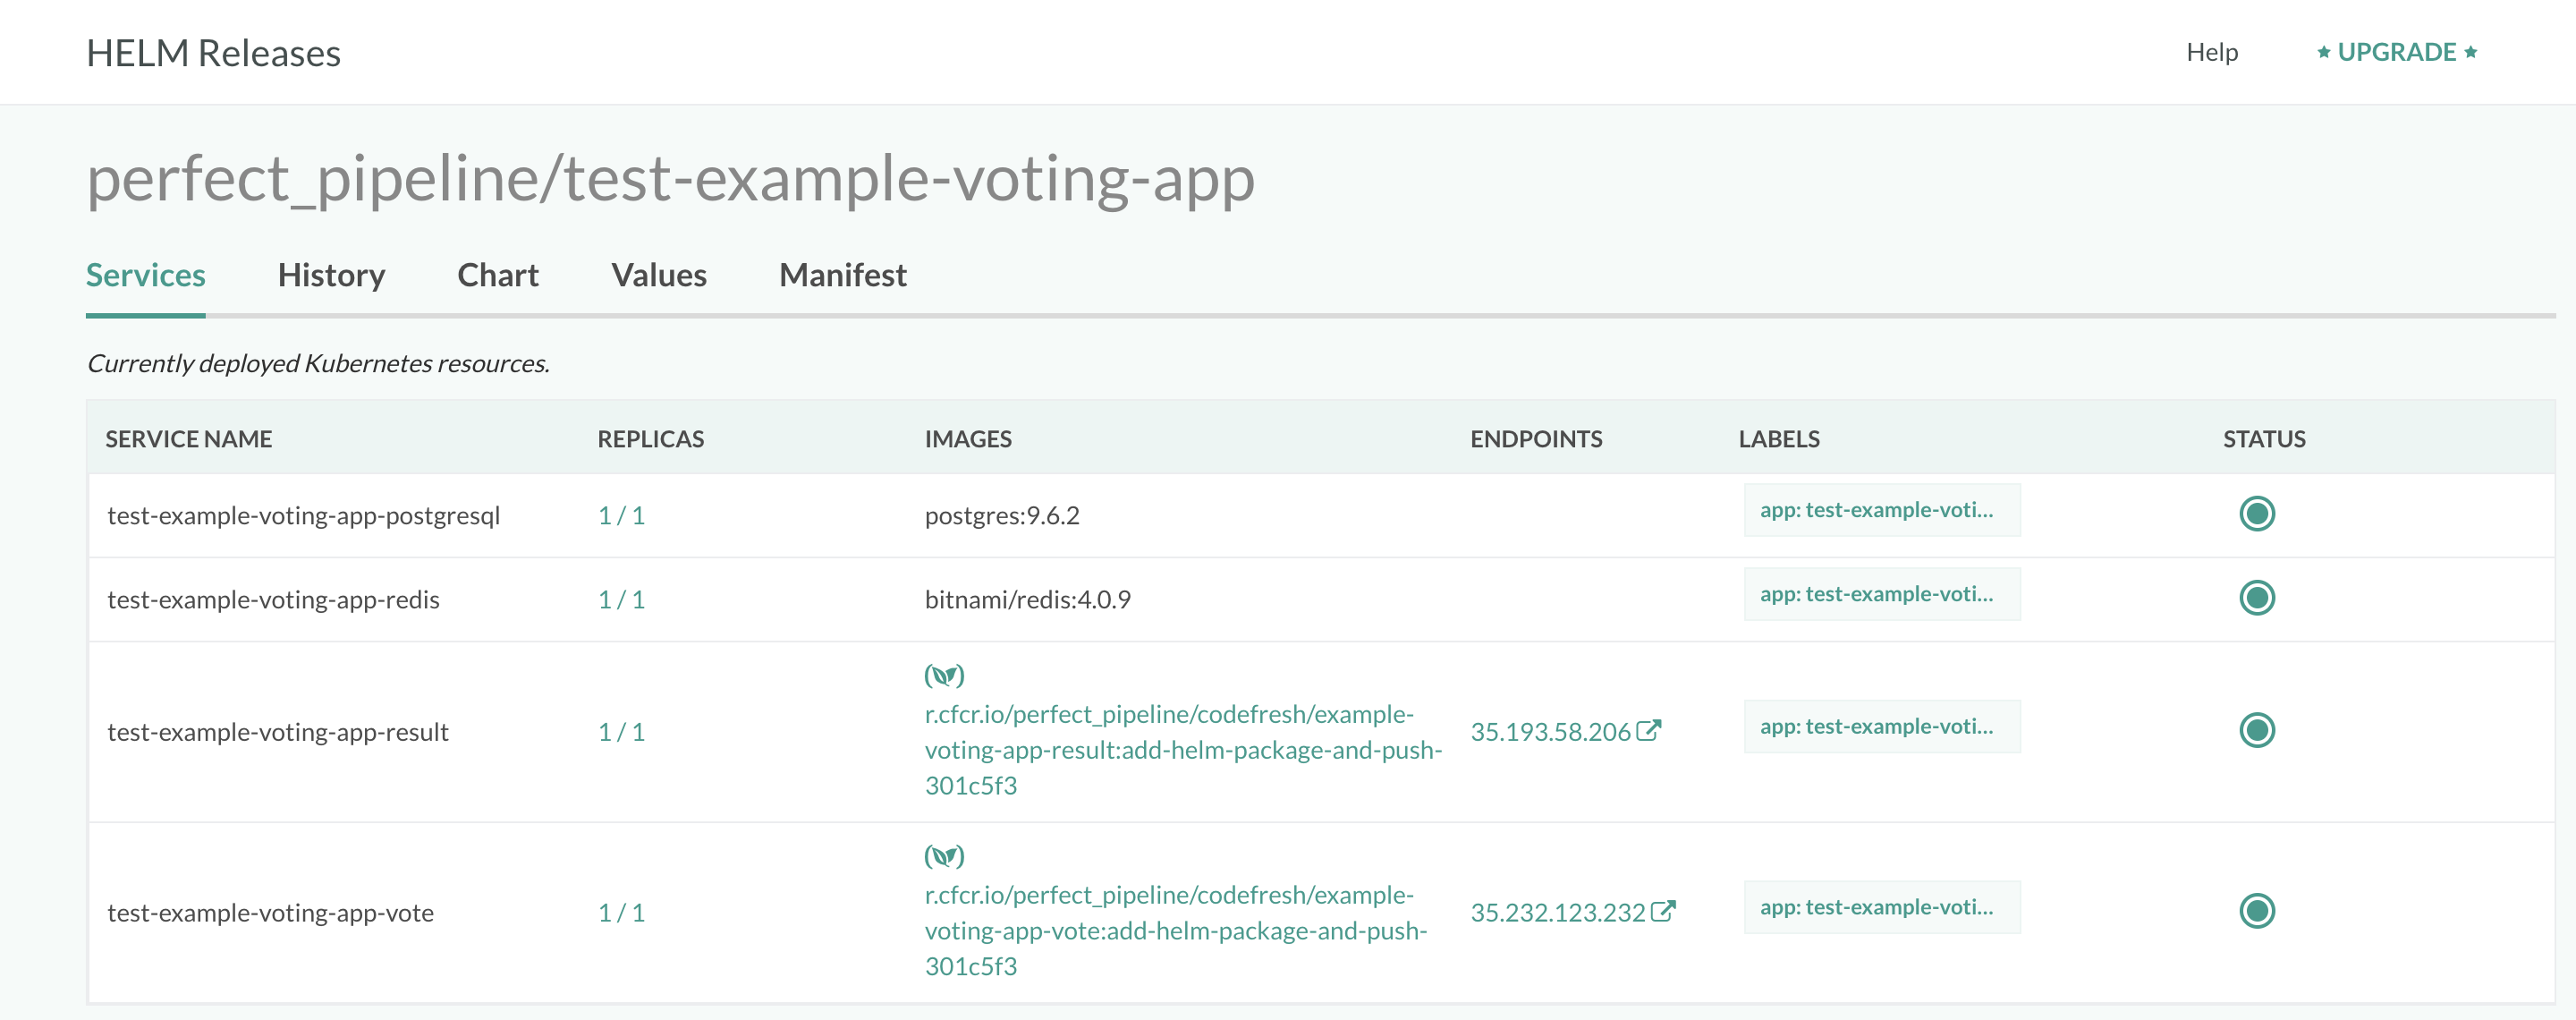 Utilizing Codefresh's integrated Helm Repository for Docker's Voting App